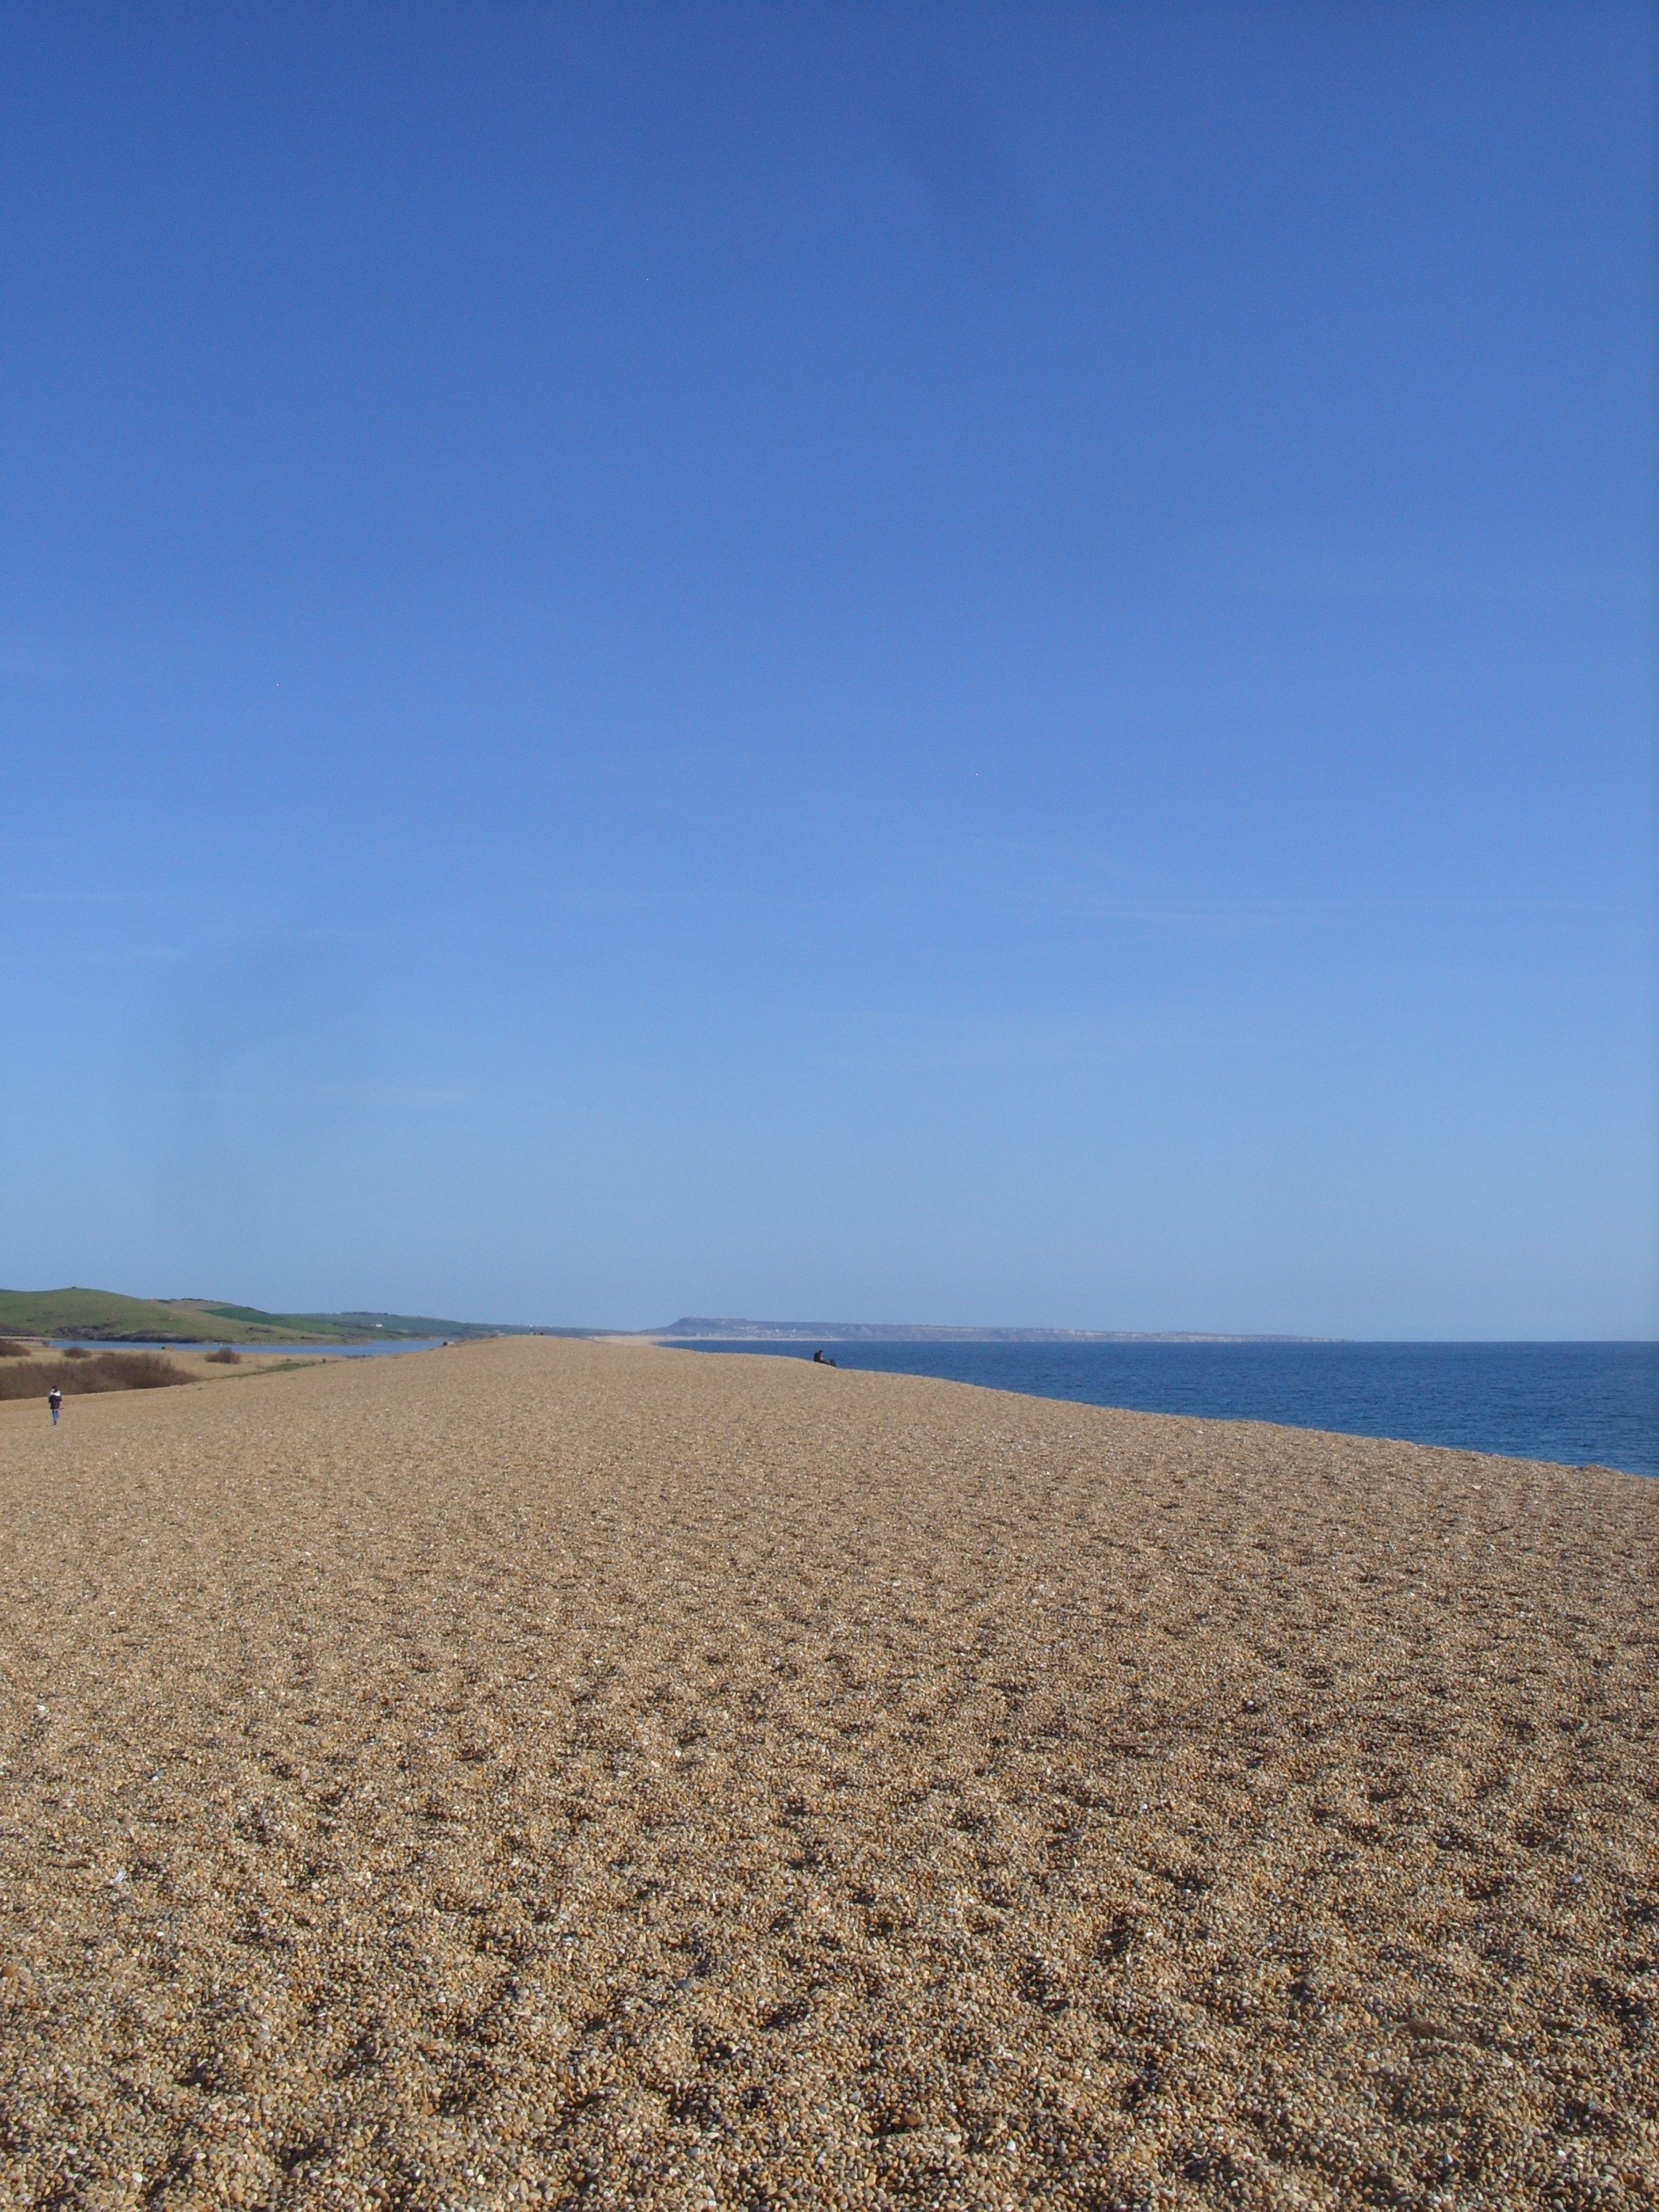 The one merry visit I had to Chesil Beach